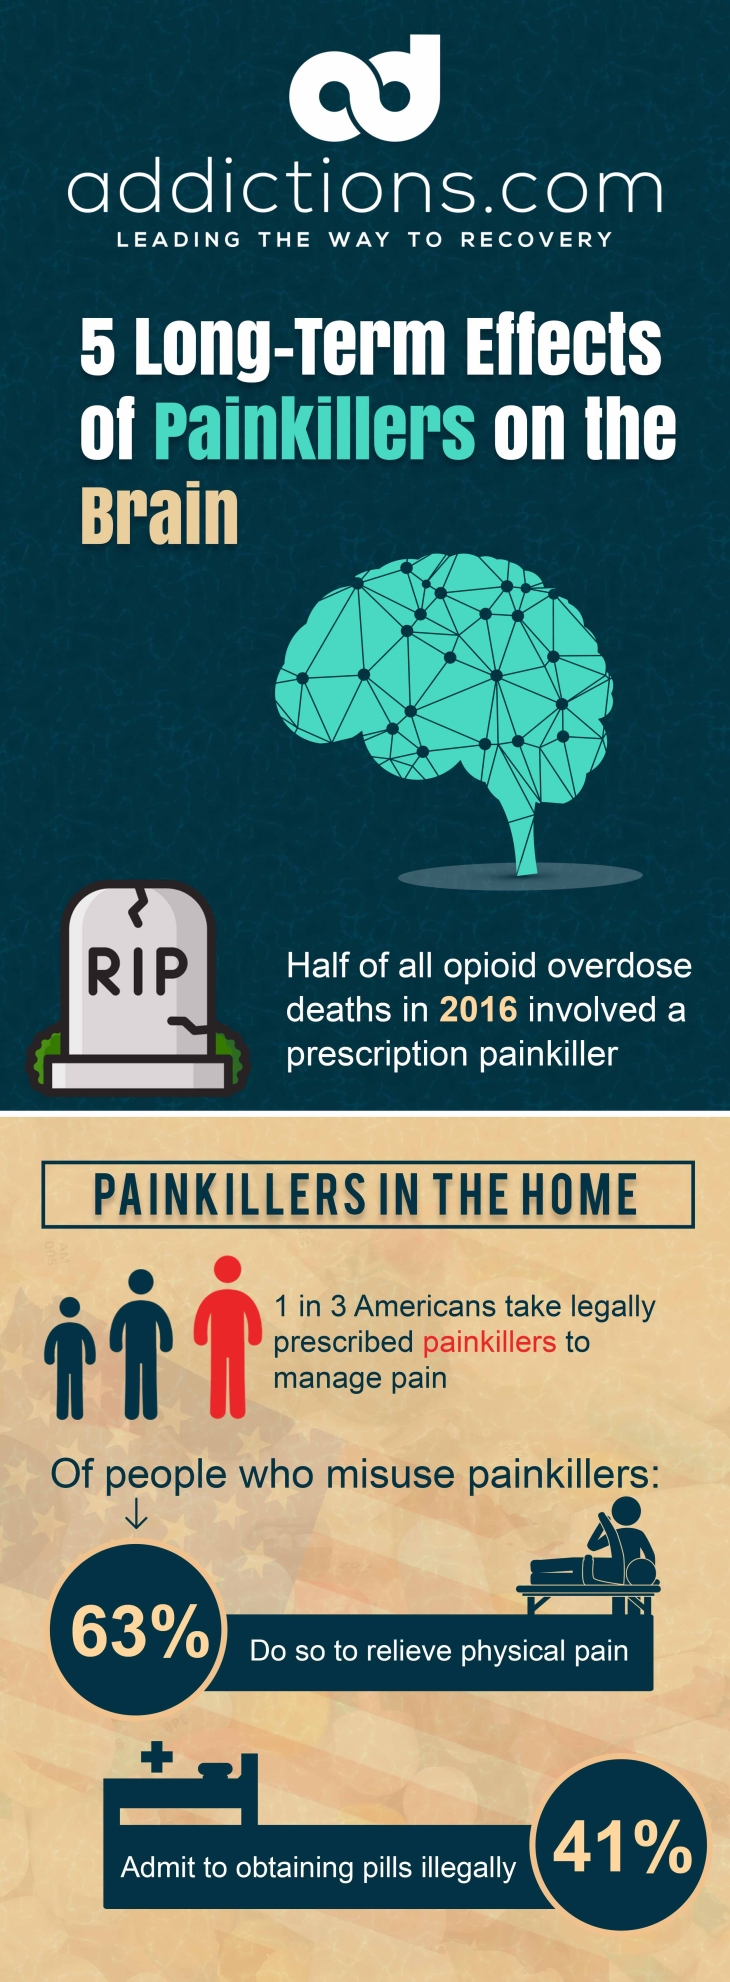 5 Long-Term Effects of Painkillers on the Brain